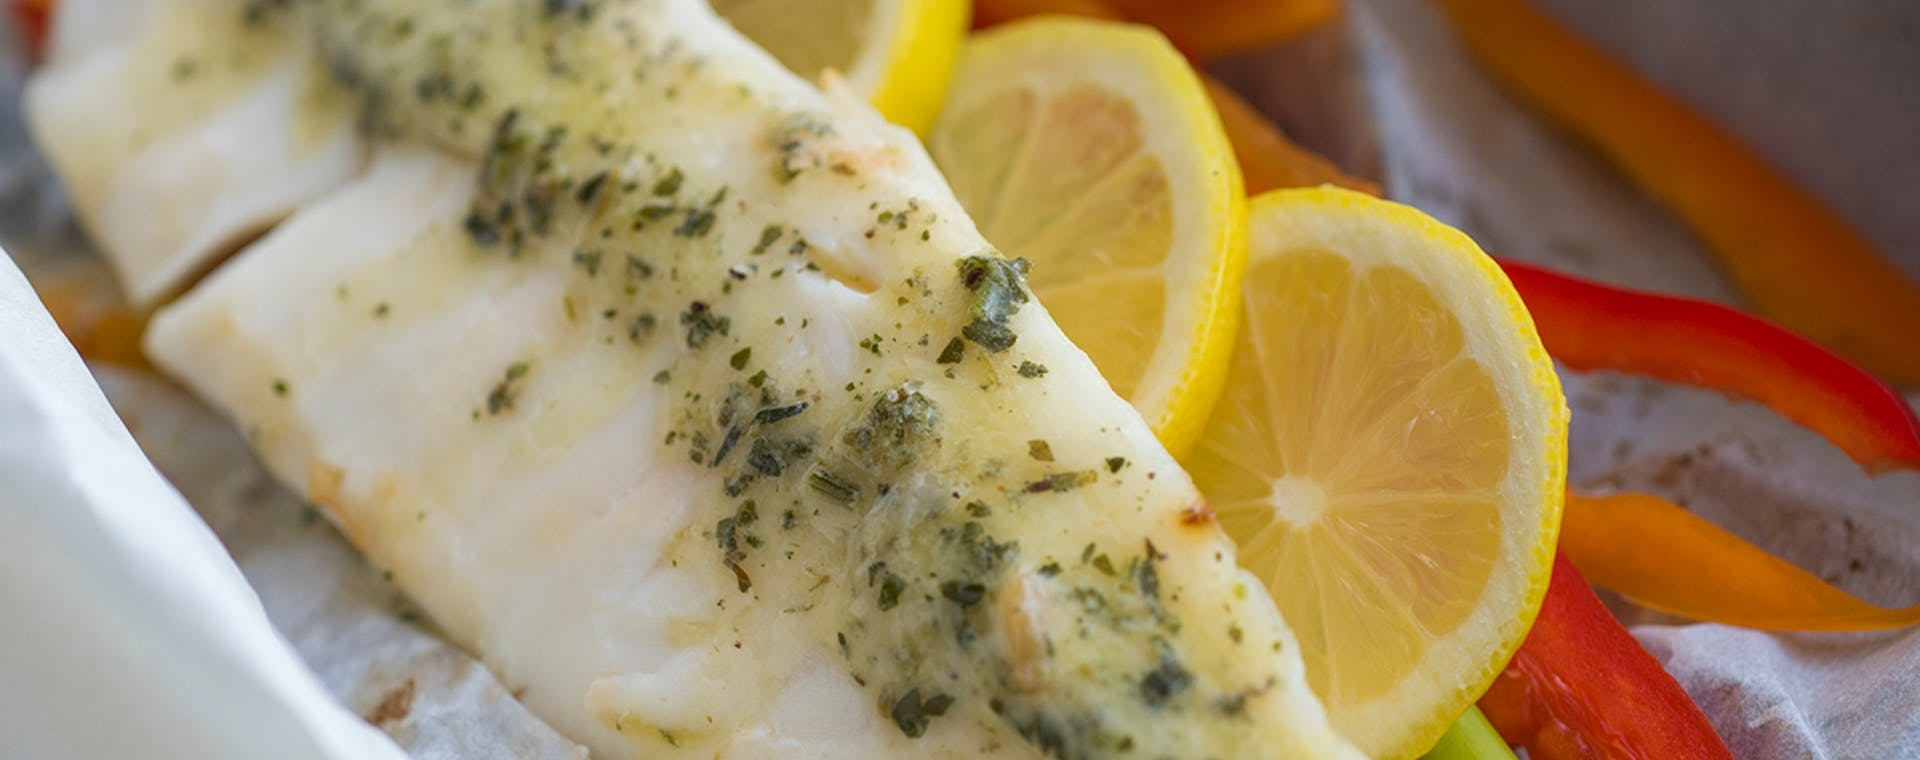 Fish Baked in Parchment with Lemon Garlic Herb Butter